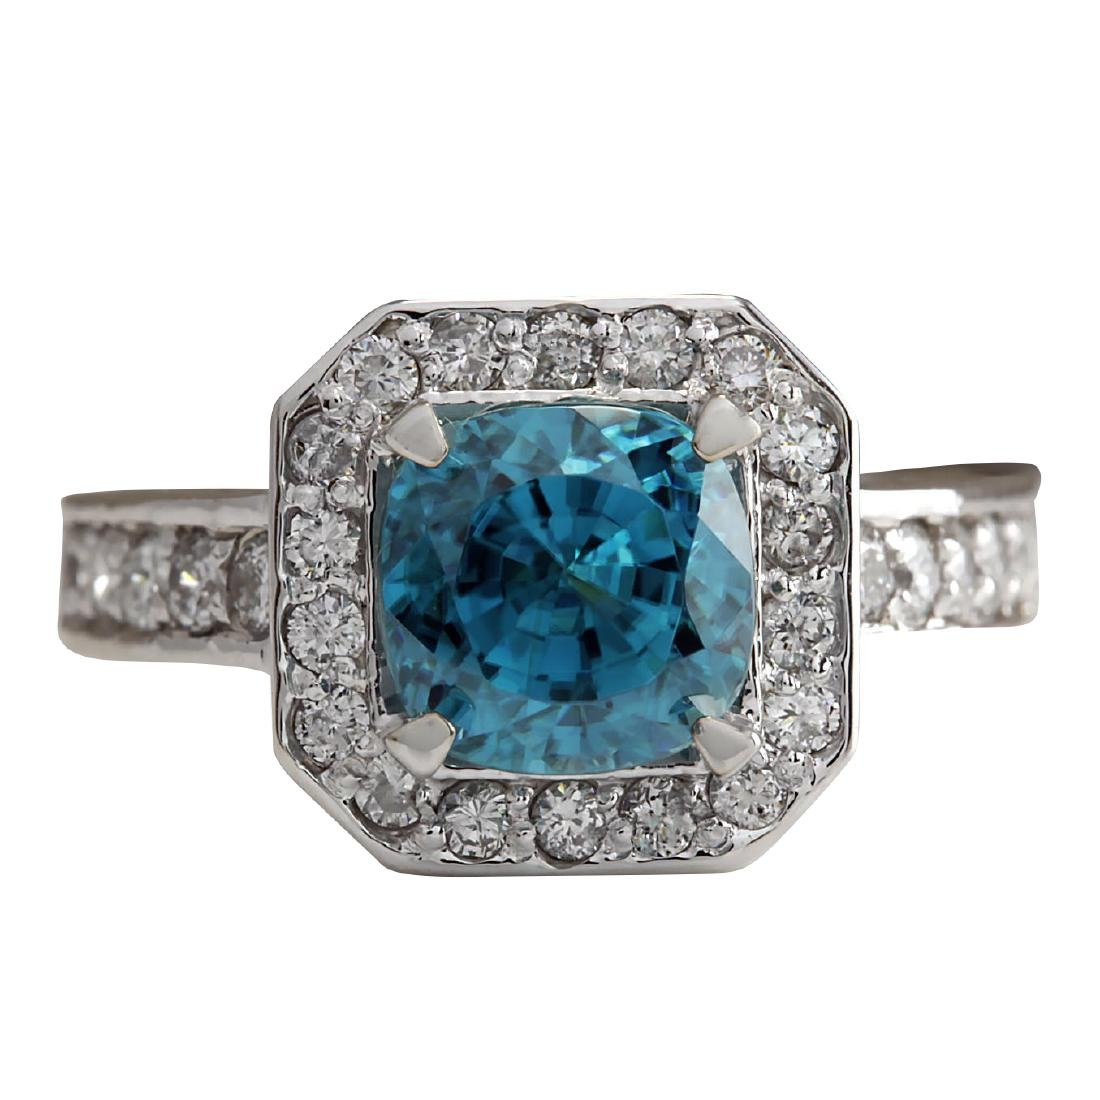 5.85CTW Natural Blue Zircon And Diamond Ring 18K Solid